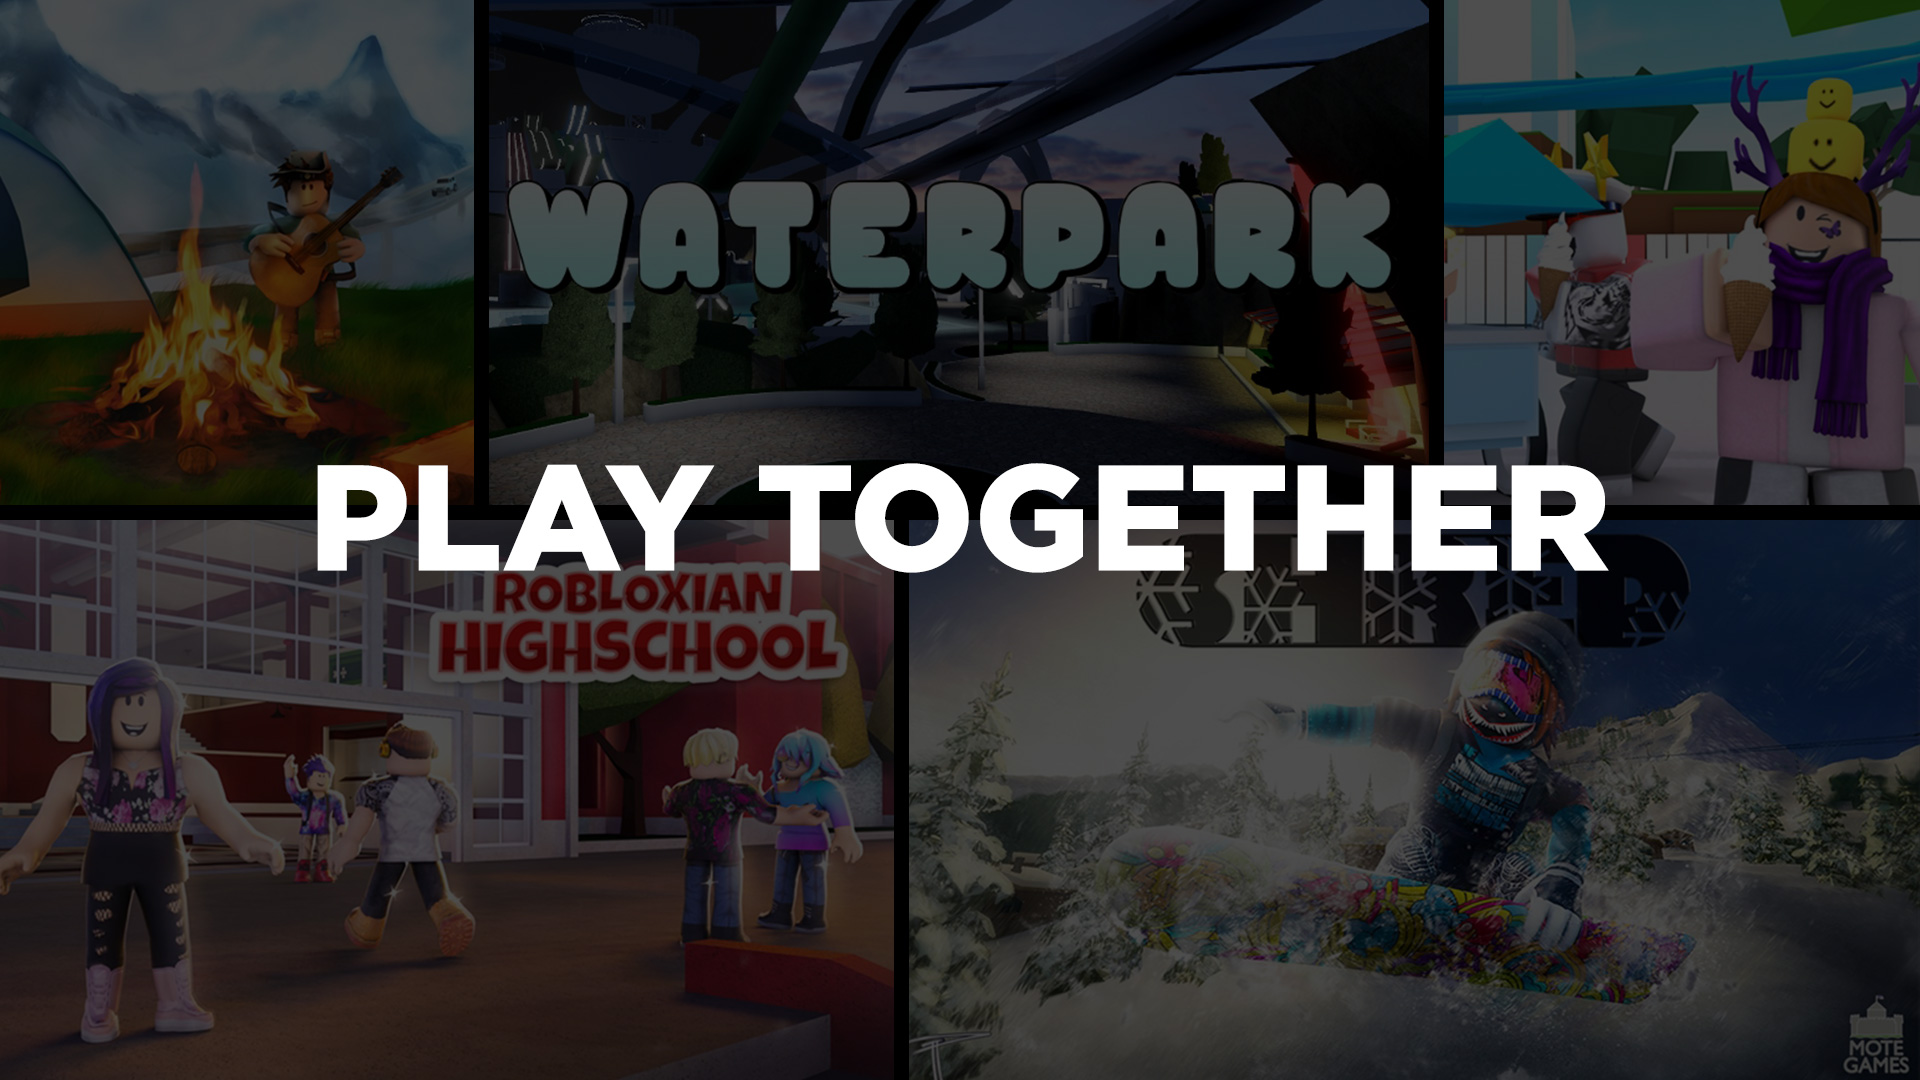 Roblox On Twitter Every Game On The Play Together Sort Offers